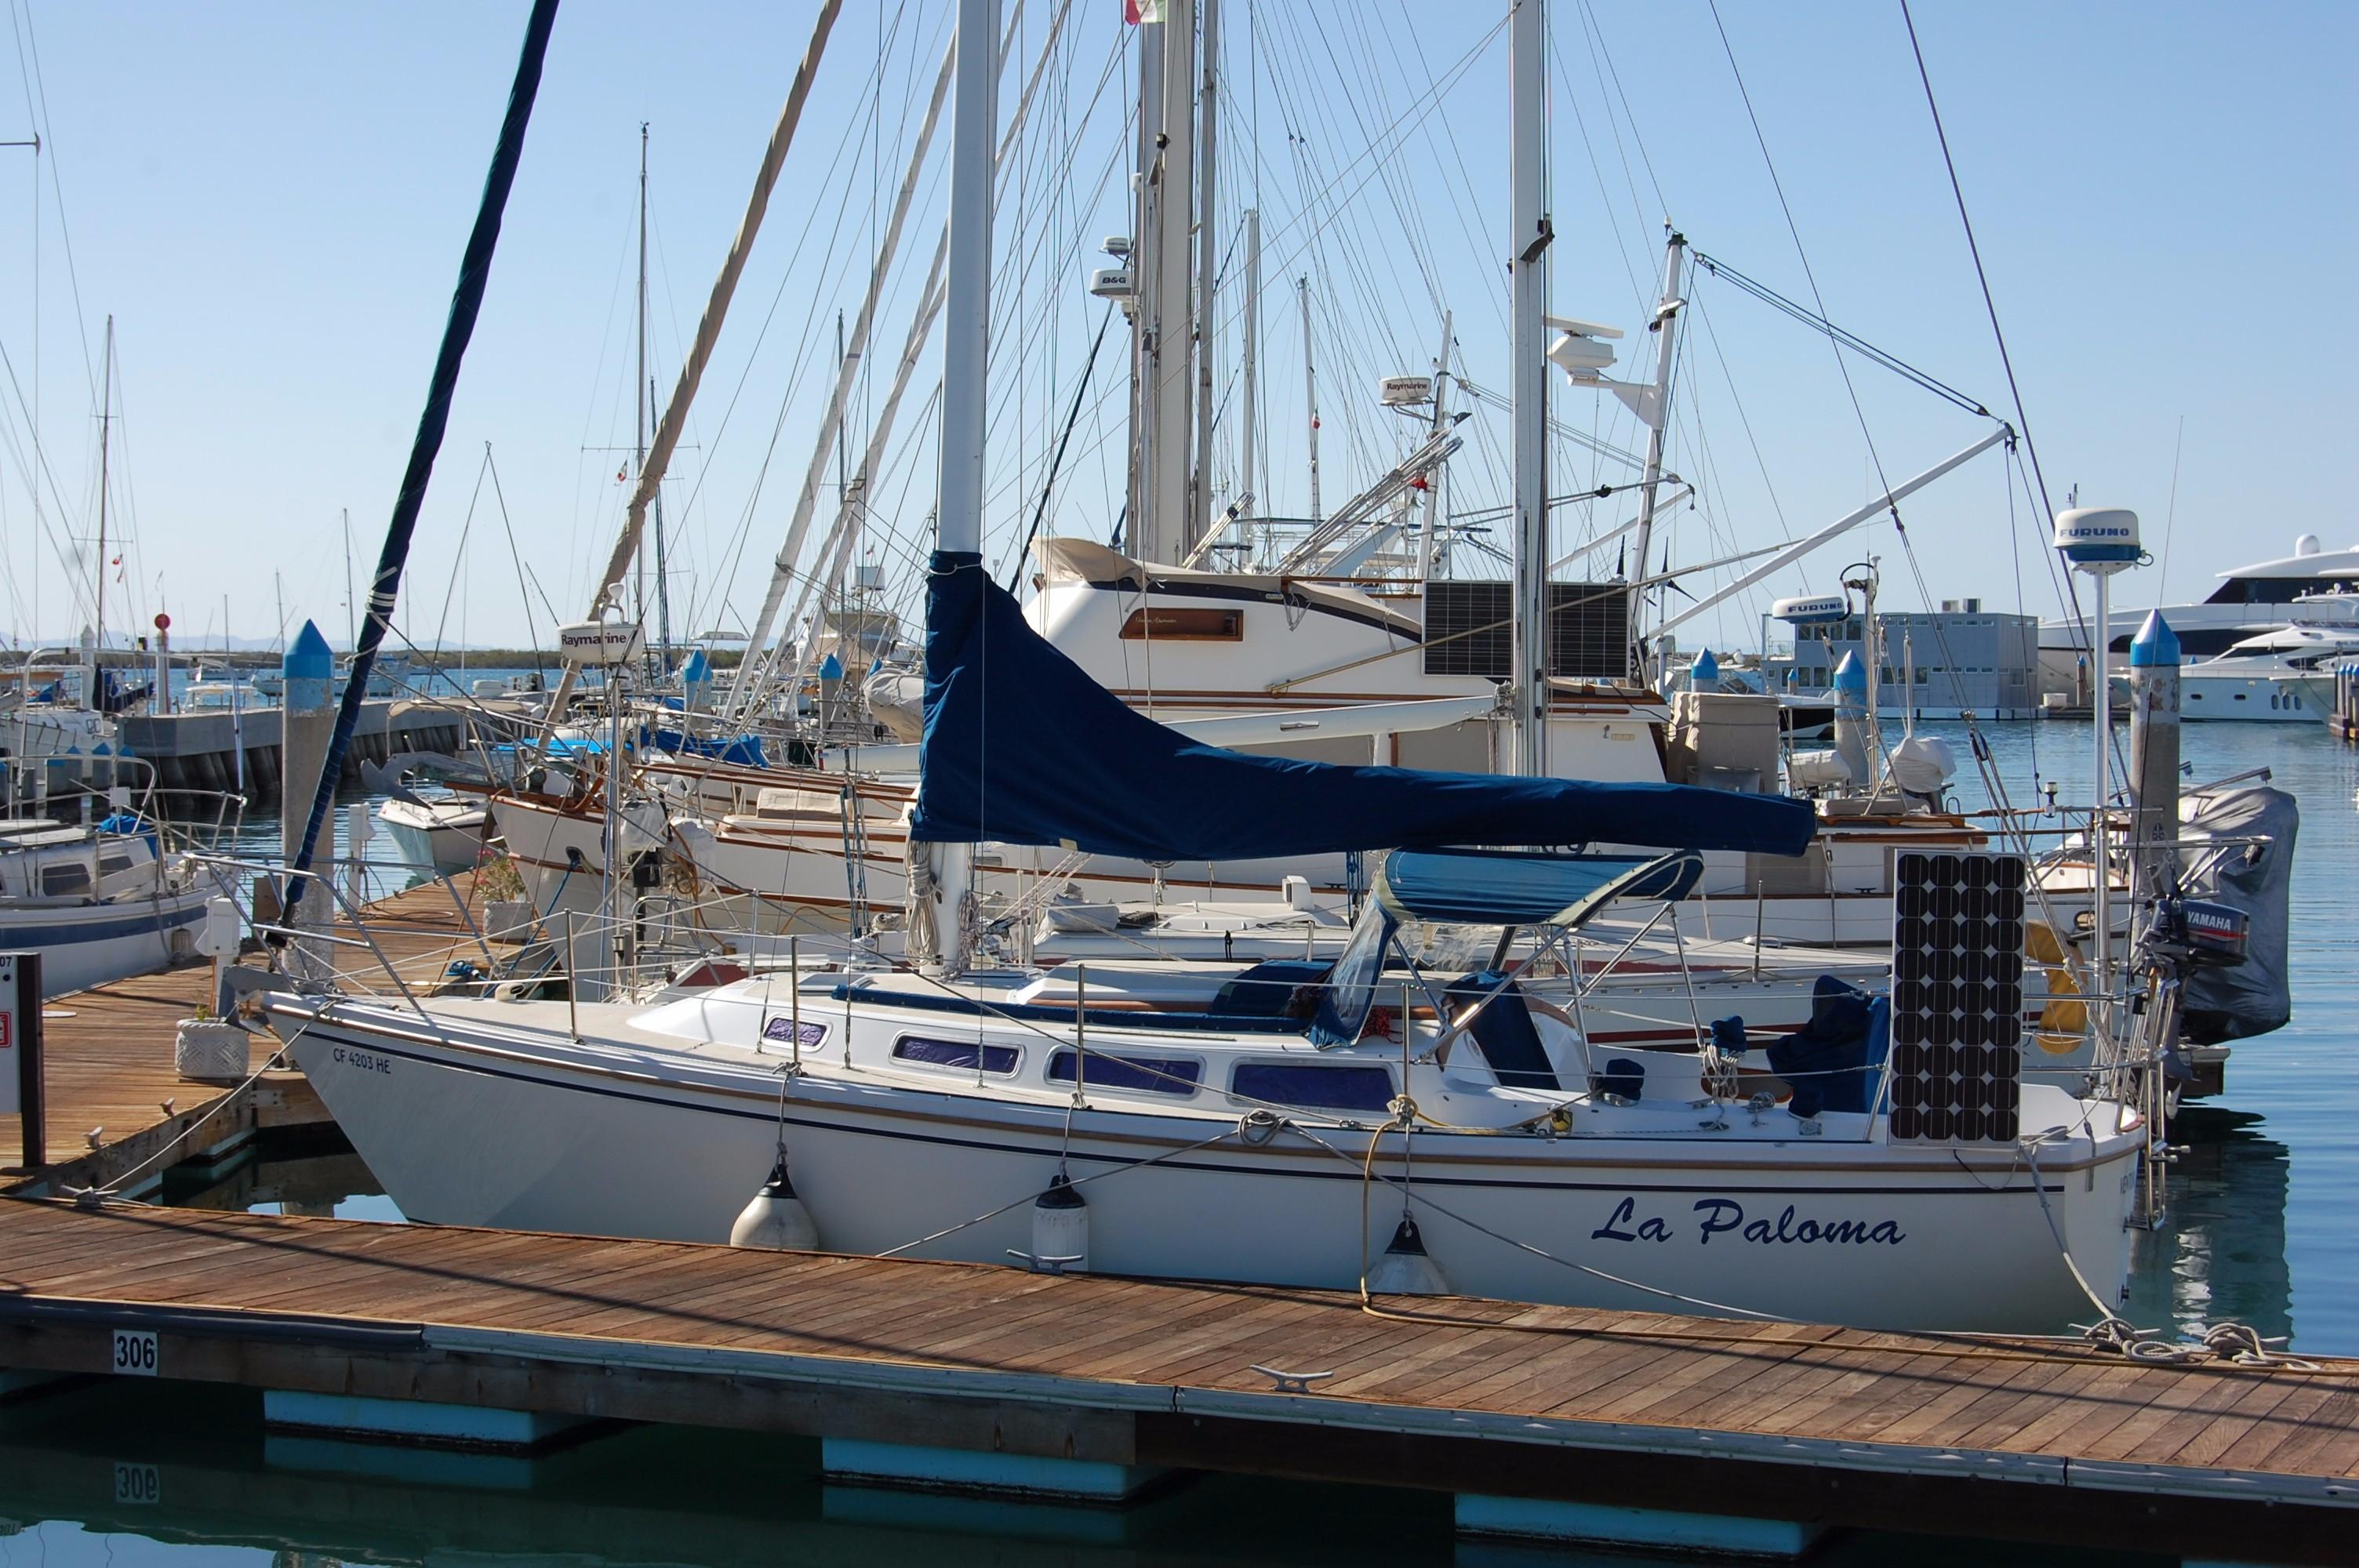 30' Catalina 30 +Boat for sale!